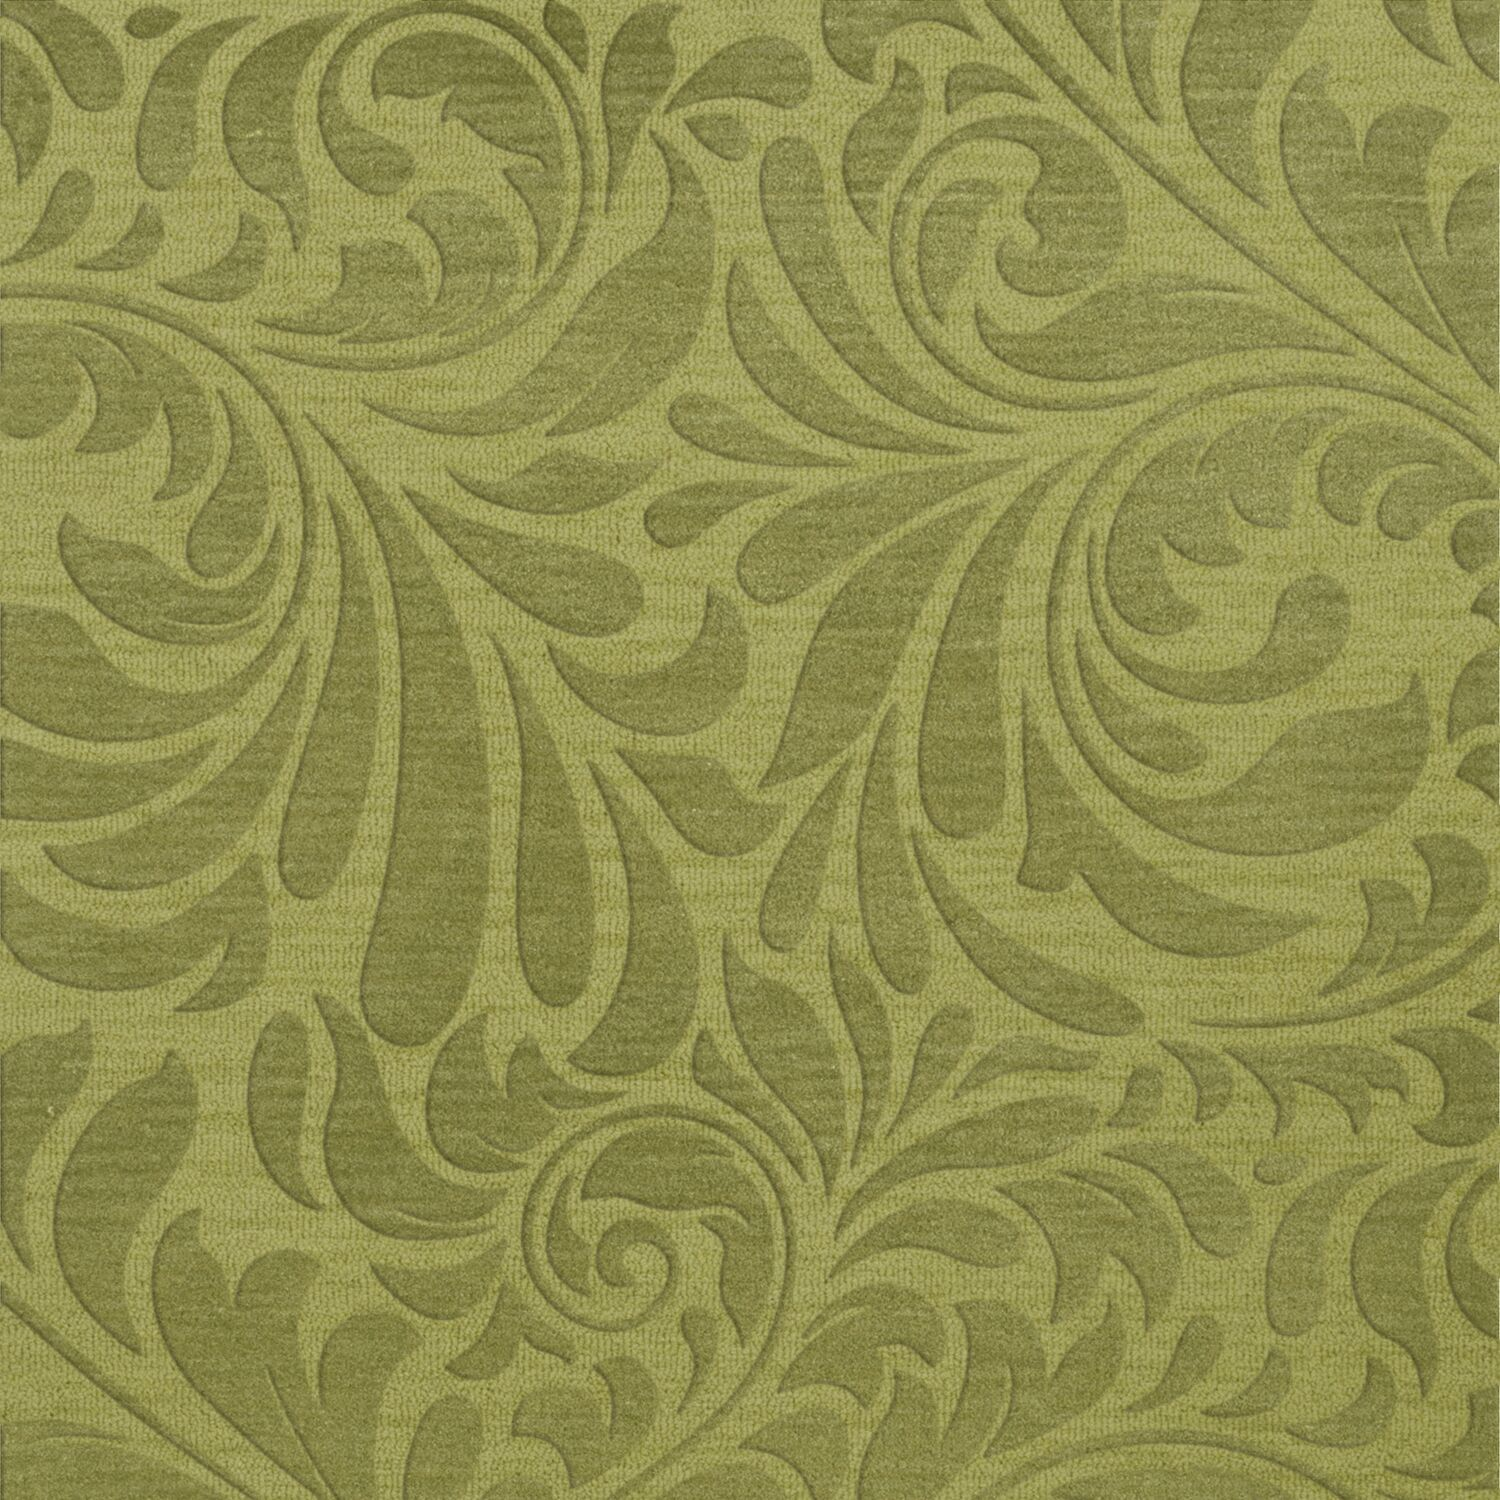 Bella Machine Woven Wool Green Pad Area Rug Rug Size: Square 6'